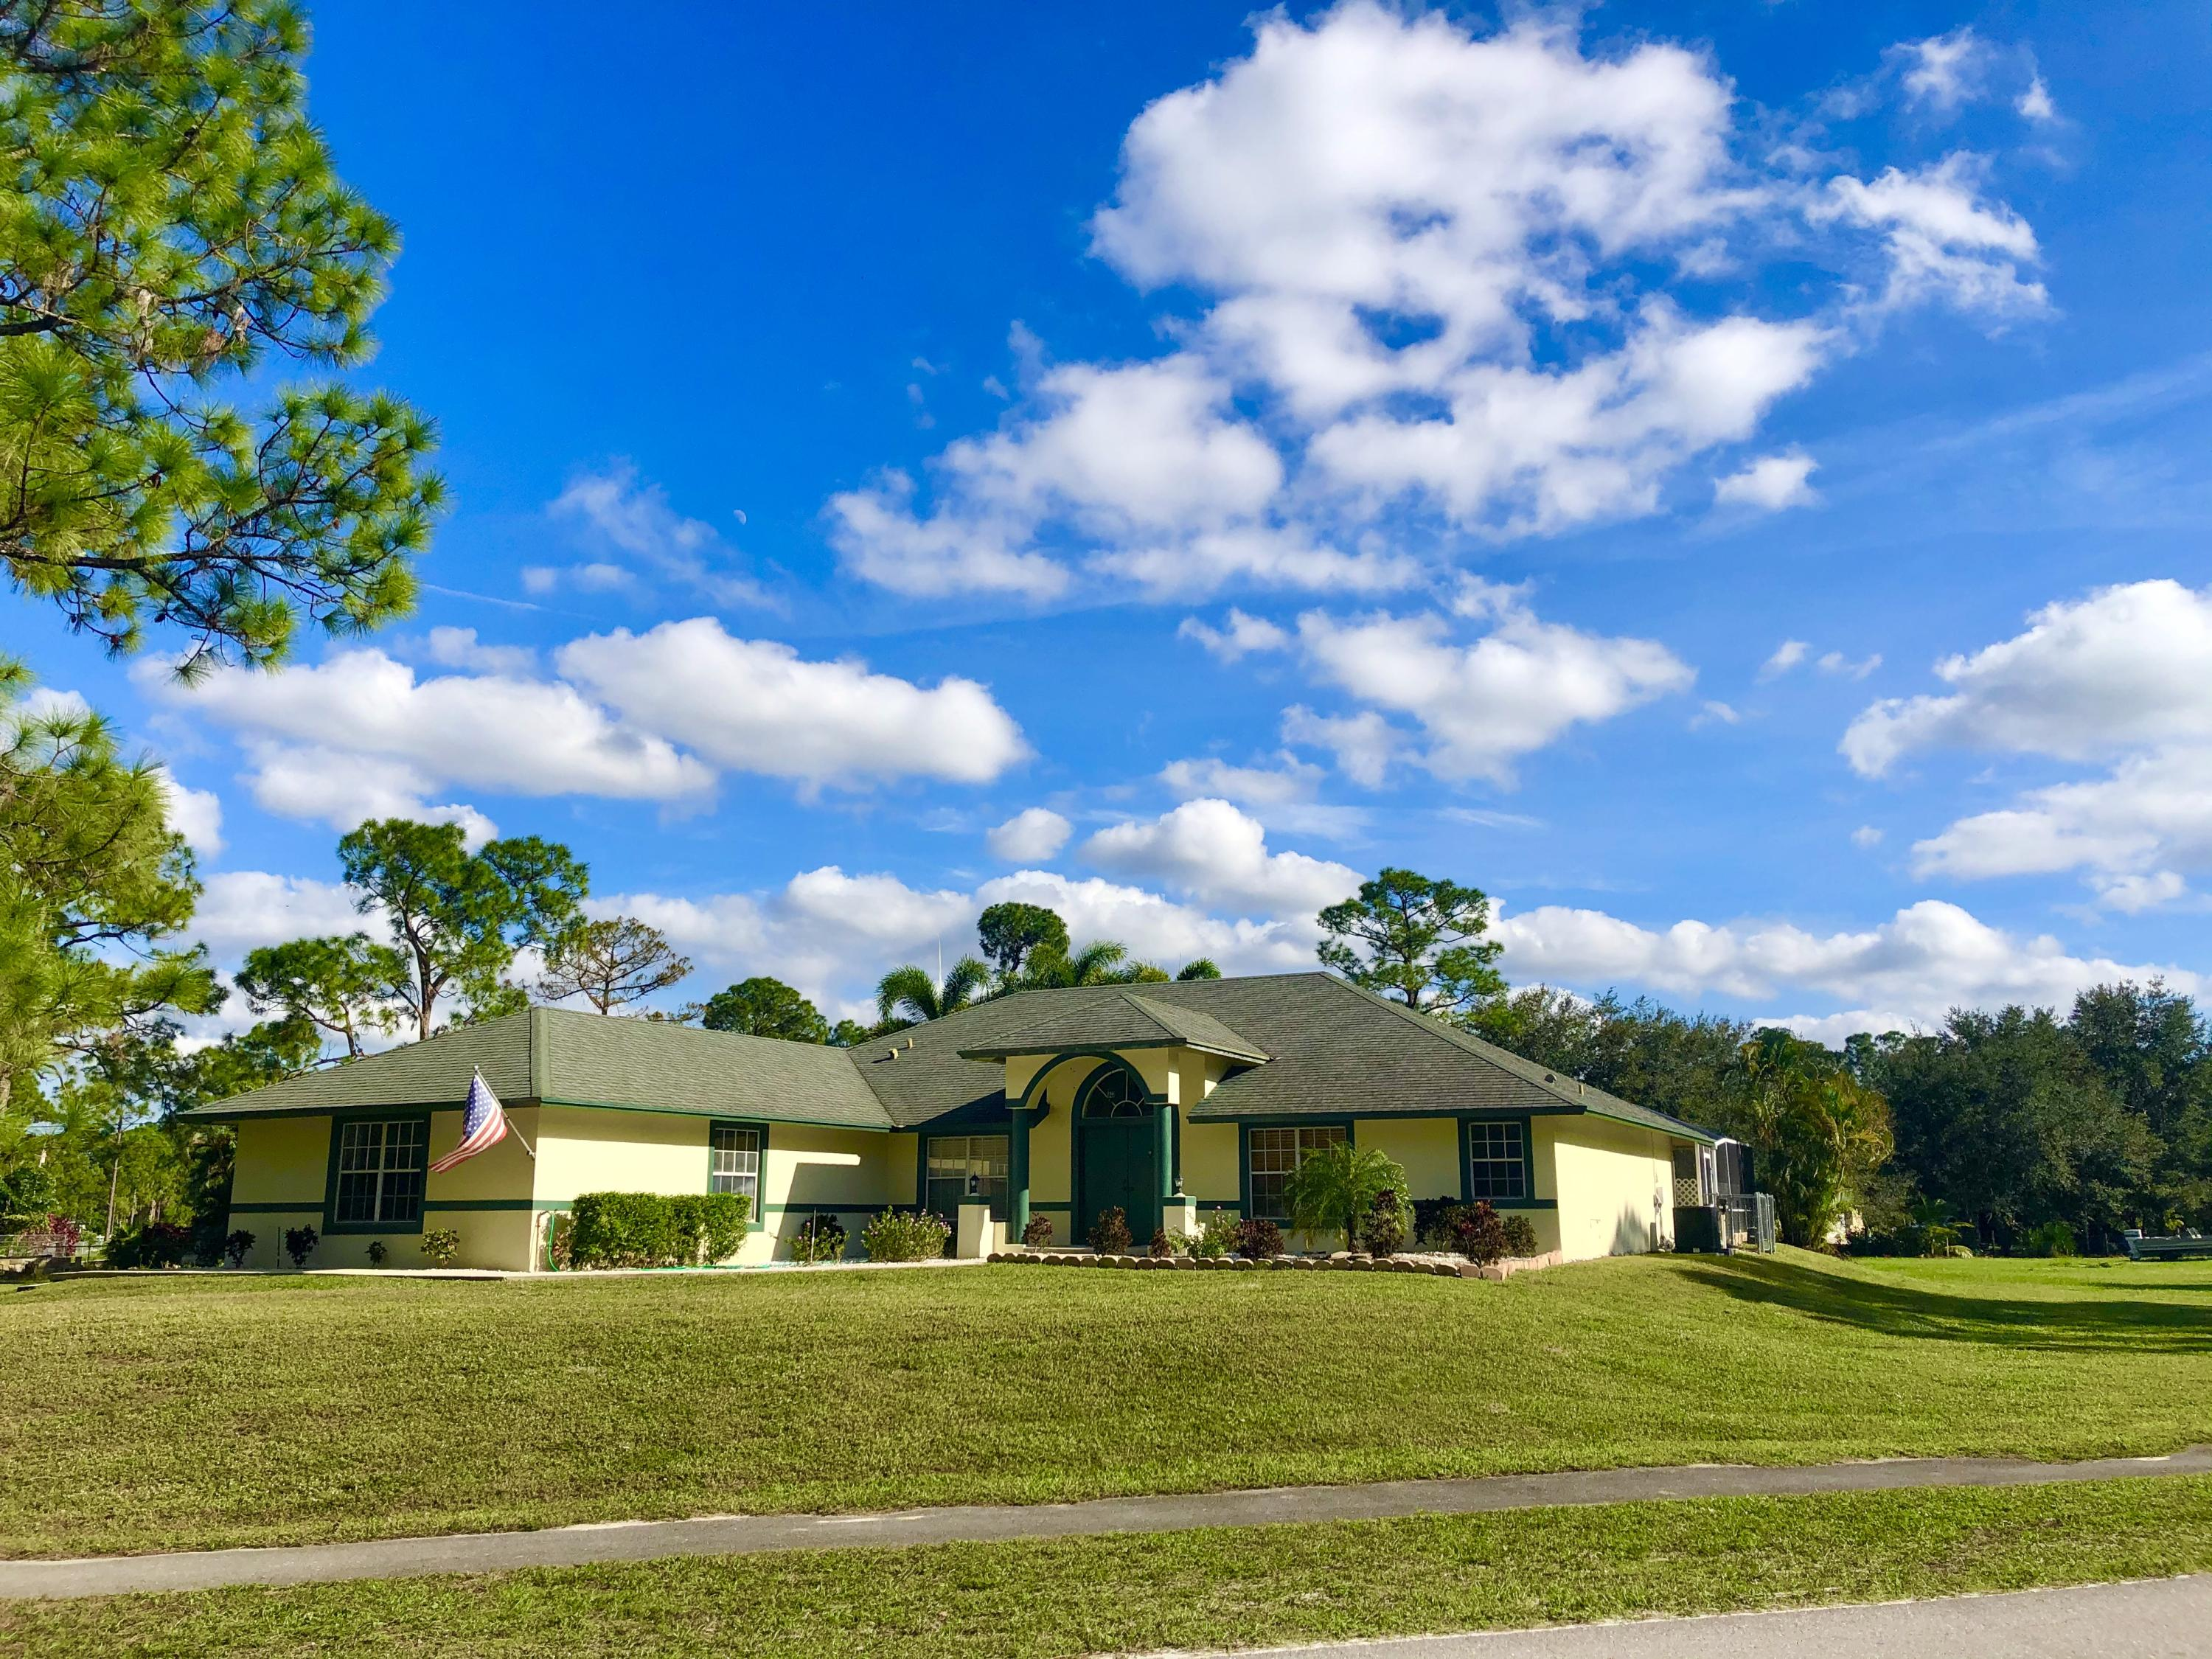 17996 42nd Road N, Loxahatchee in Palm Beach County, FL 33470 Home for Sale